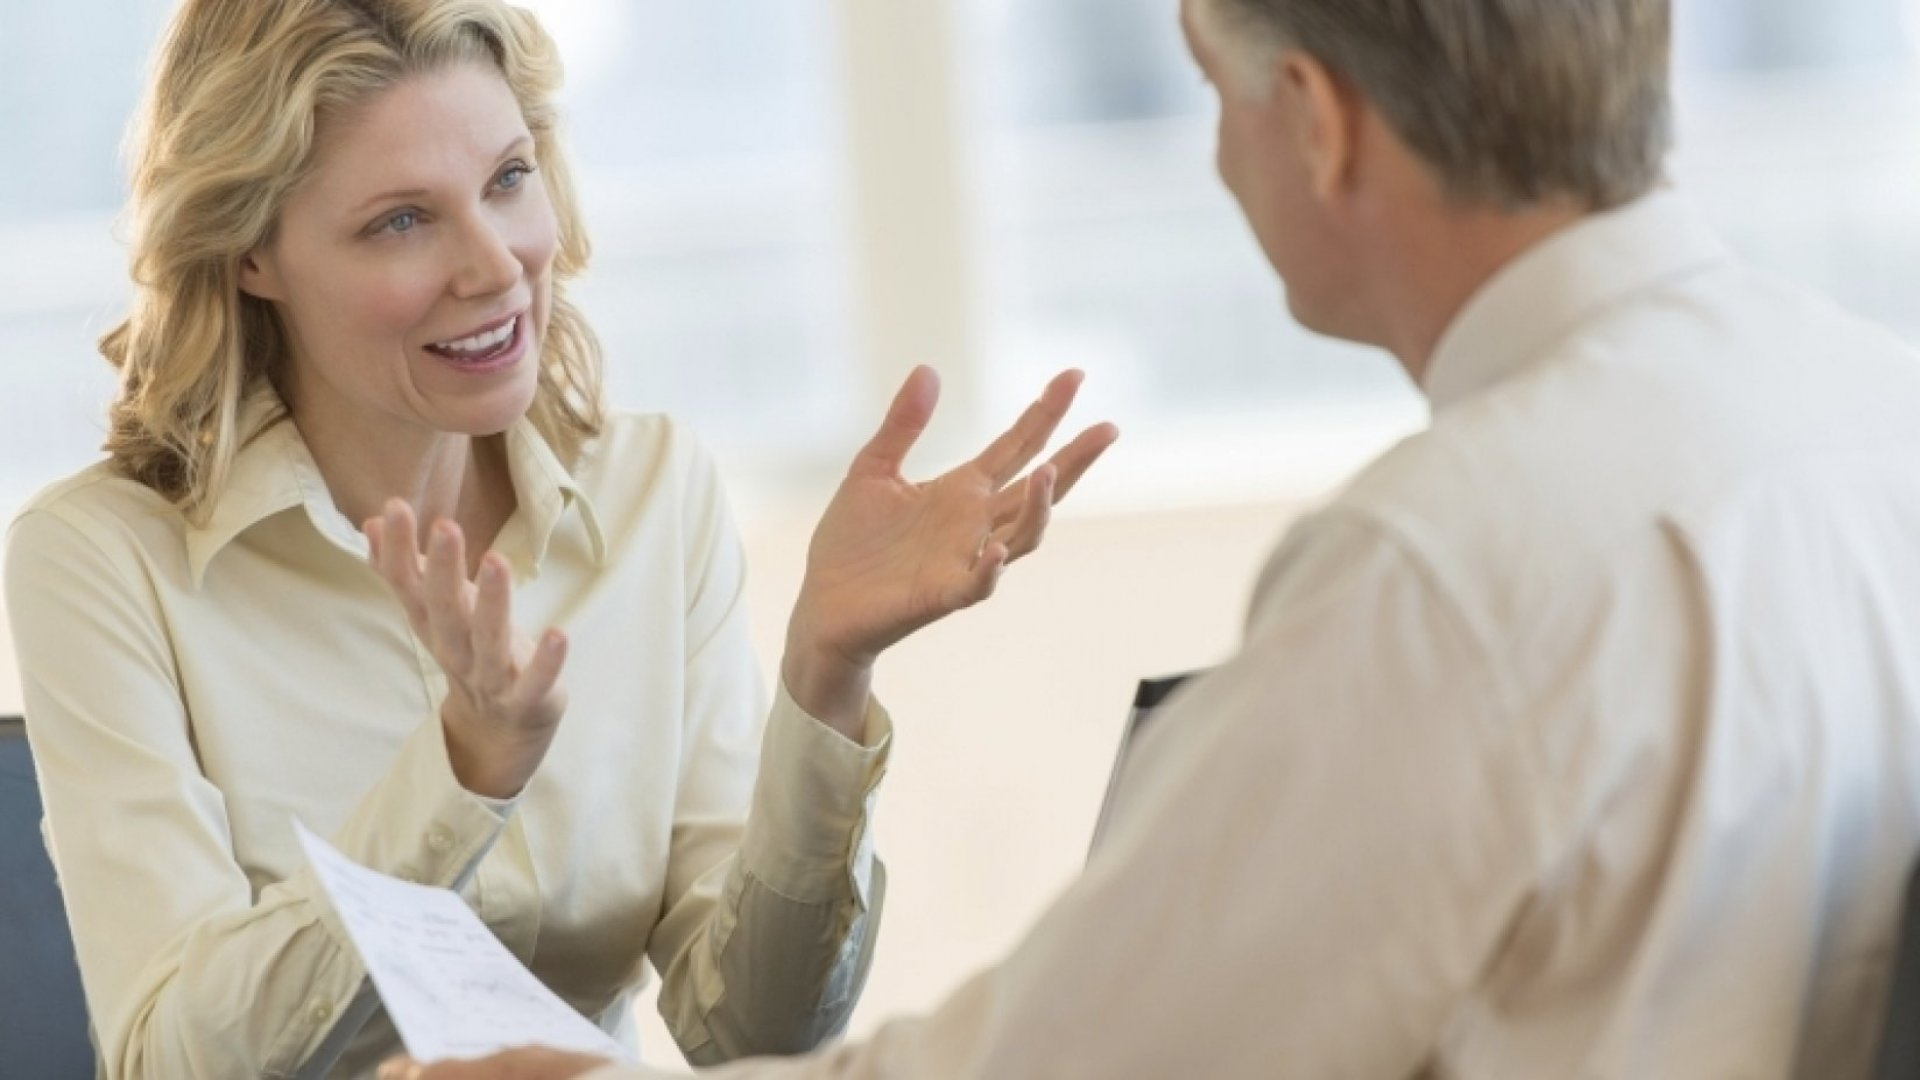 6 Things You Must Do When Interviewing Job Candidates